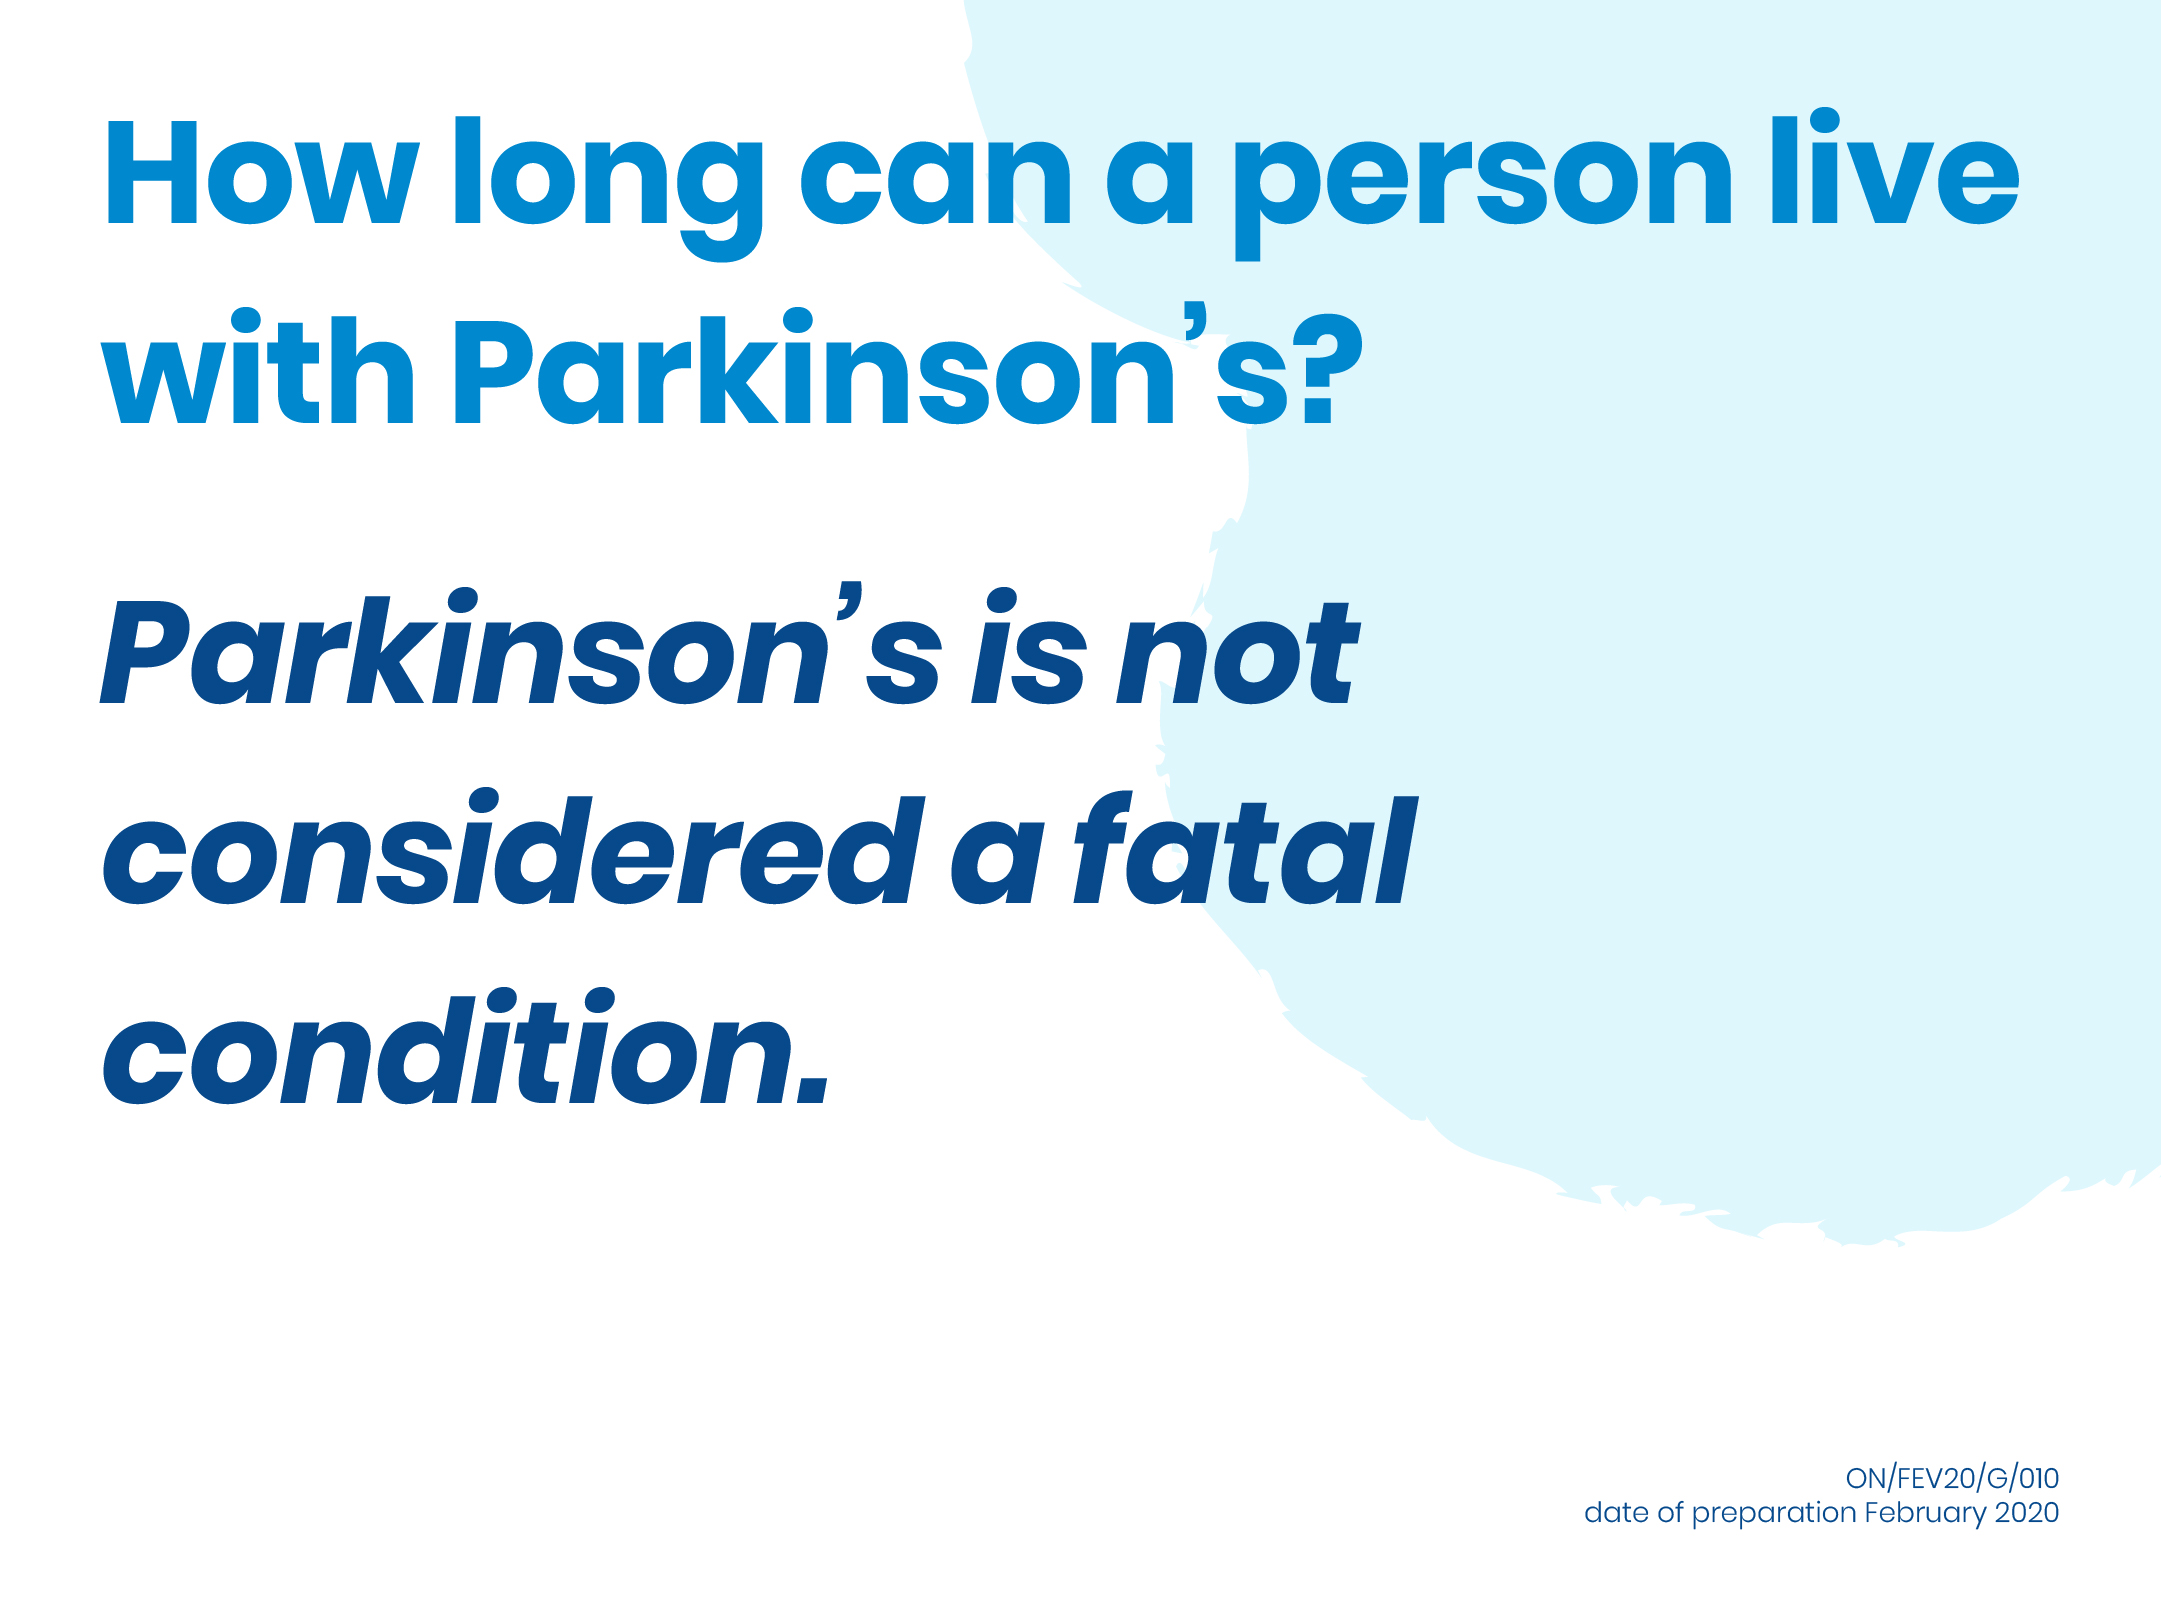 How long can patients live with Parkinson's?